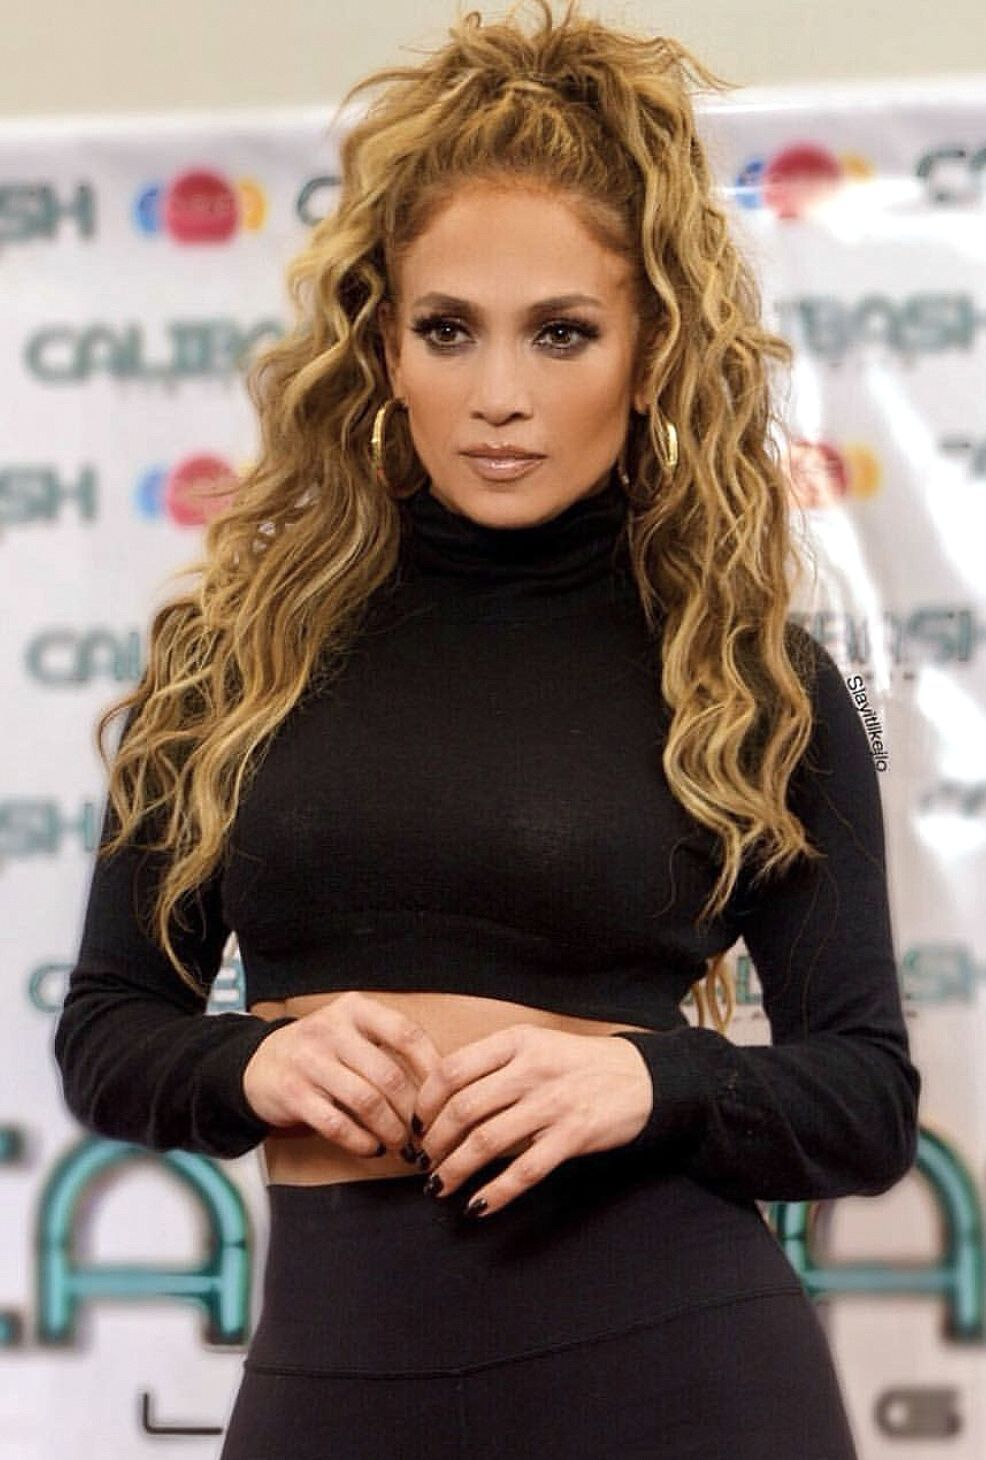 769dce421790a Pinterest: DEBORAHPRAHA Jennifer lopez Jennifer Lopez, Turtle Neck, Jenifer  Lopes